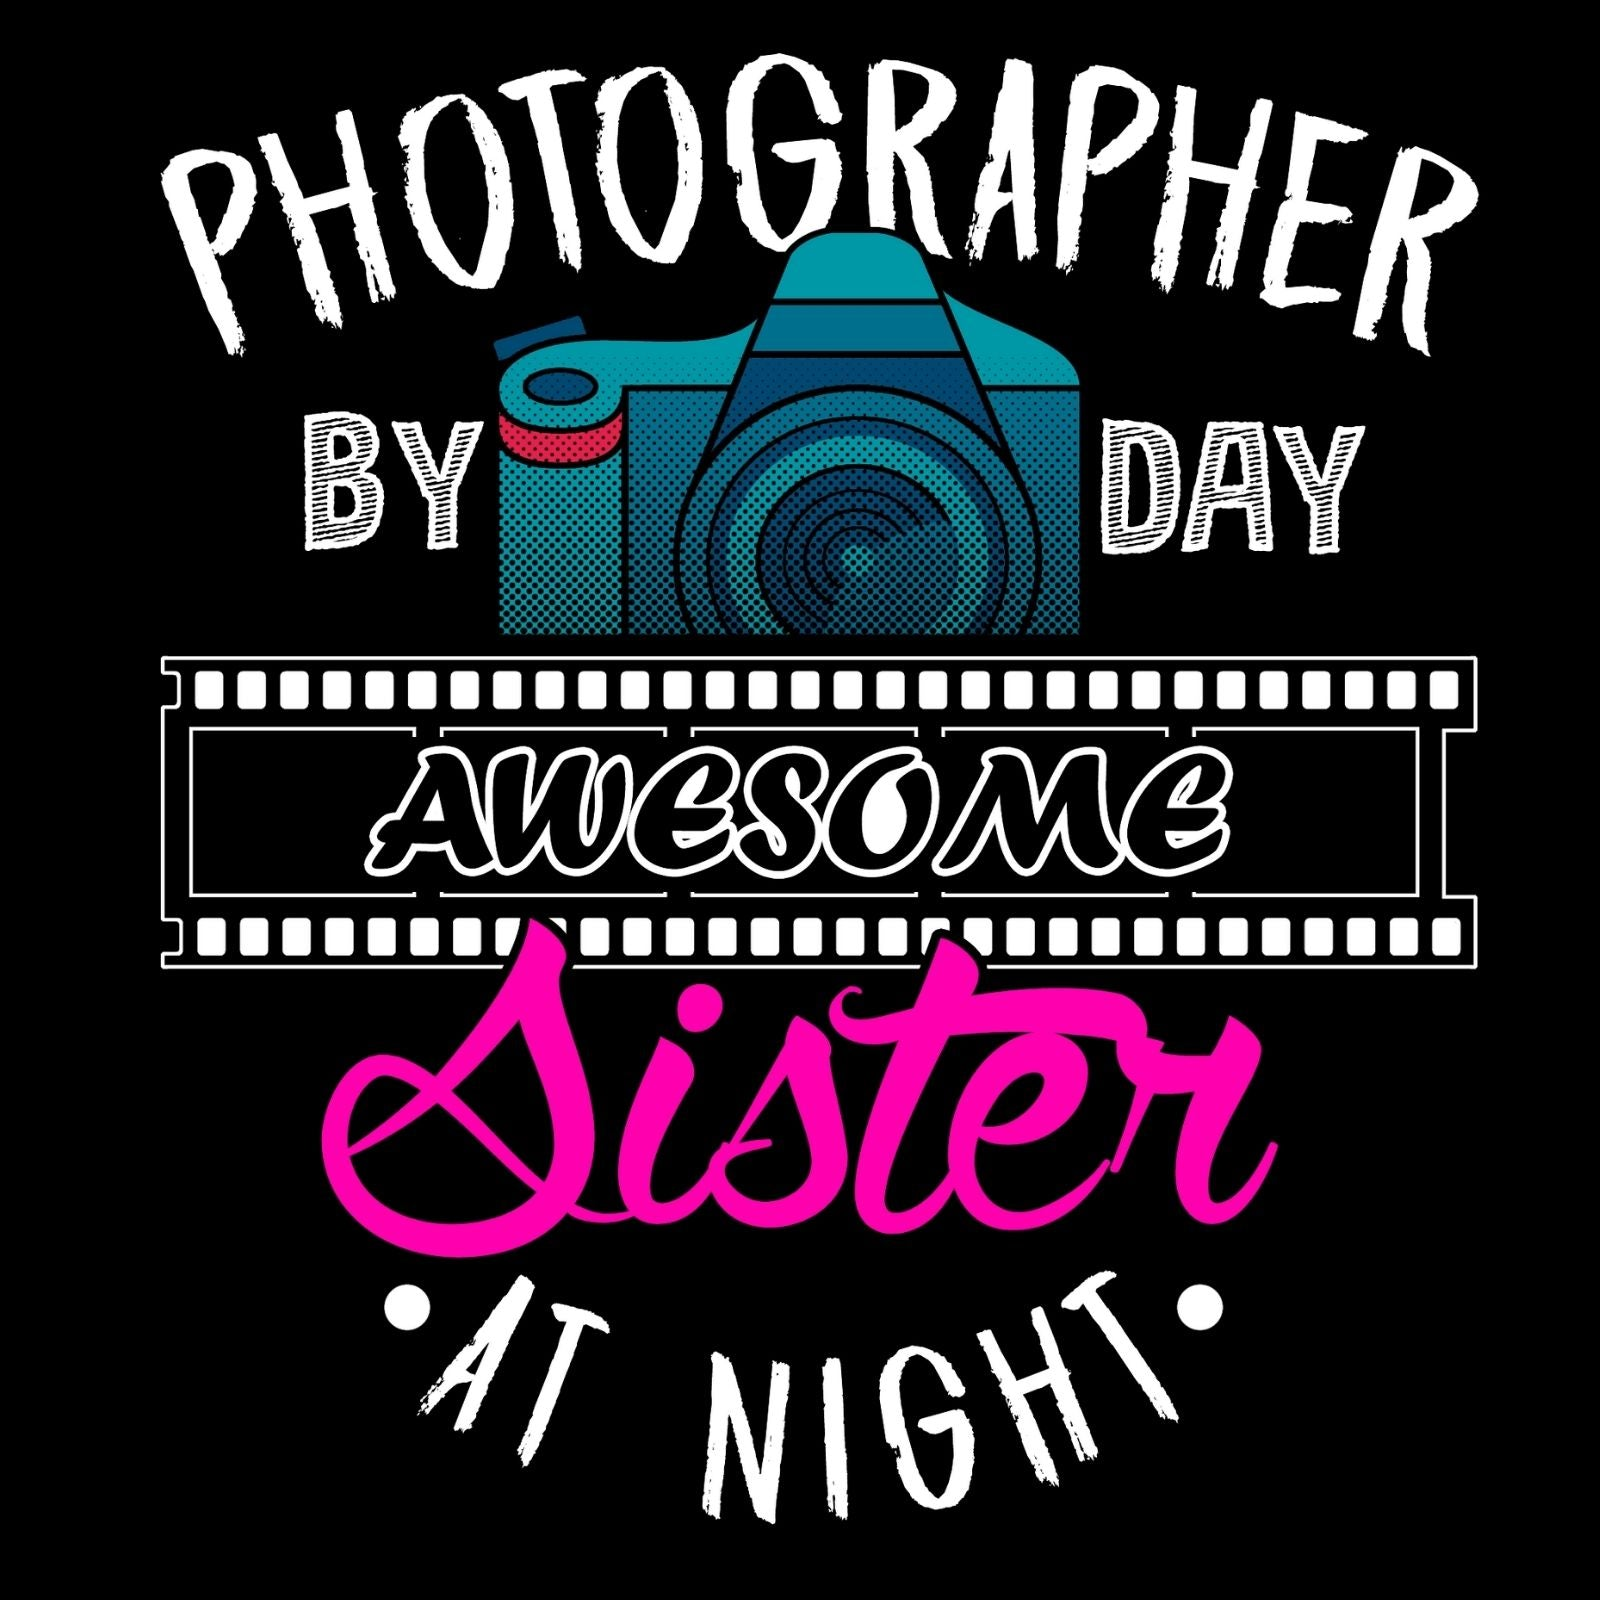 Photographer by Day Awesome Sister At Night - Bastard Graphics